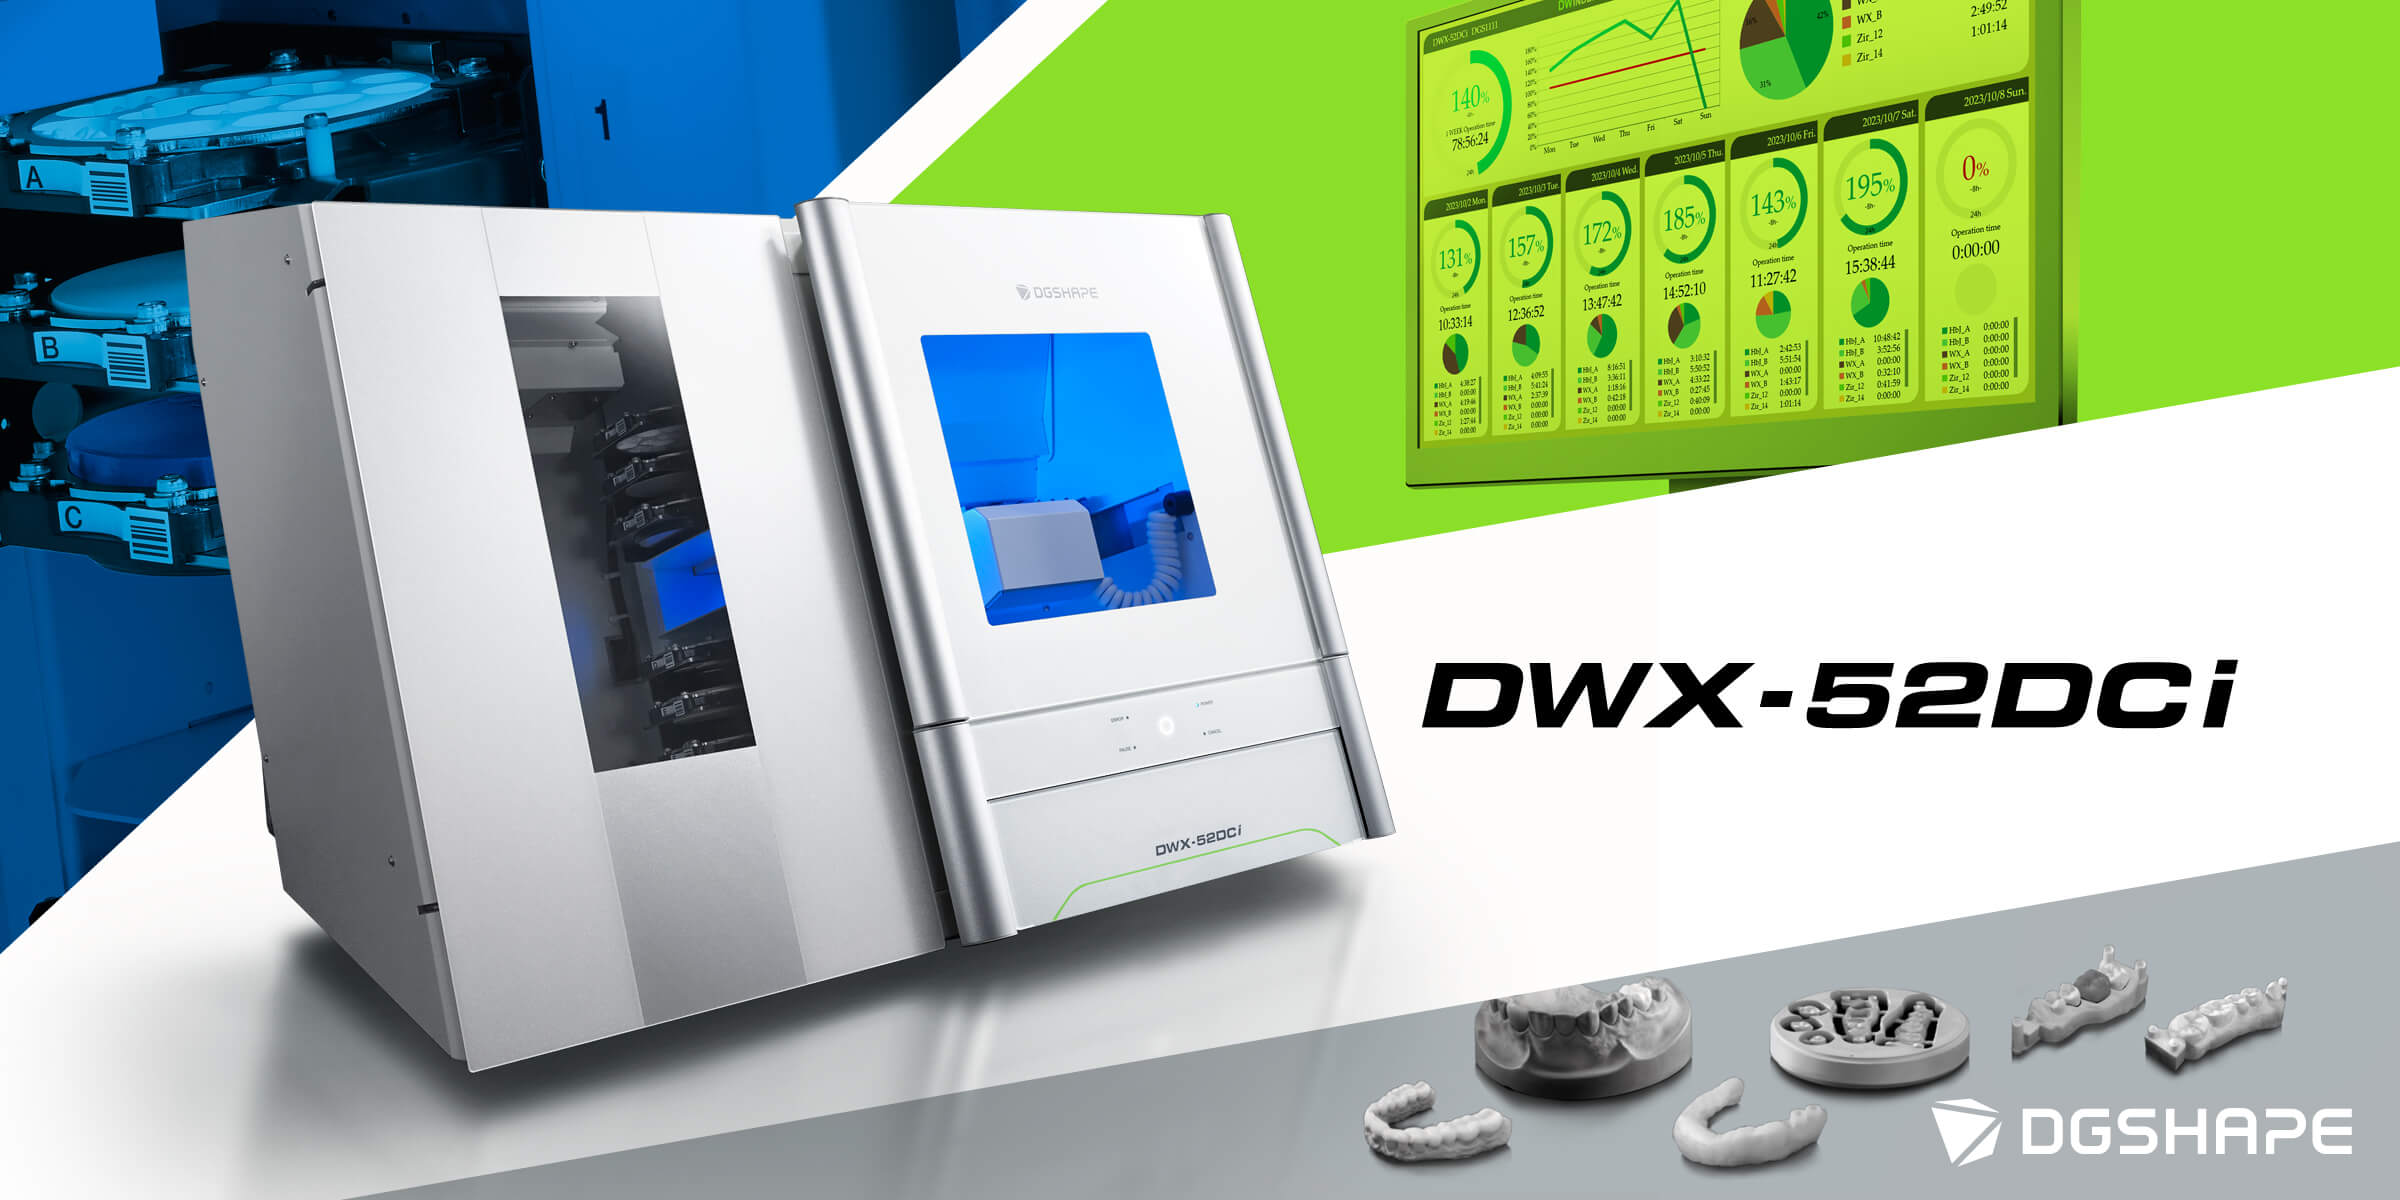 The New DWX-52DCi